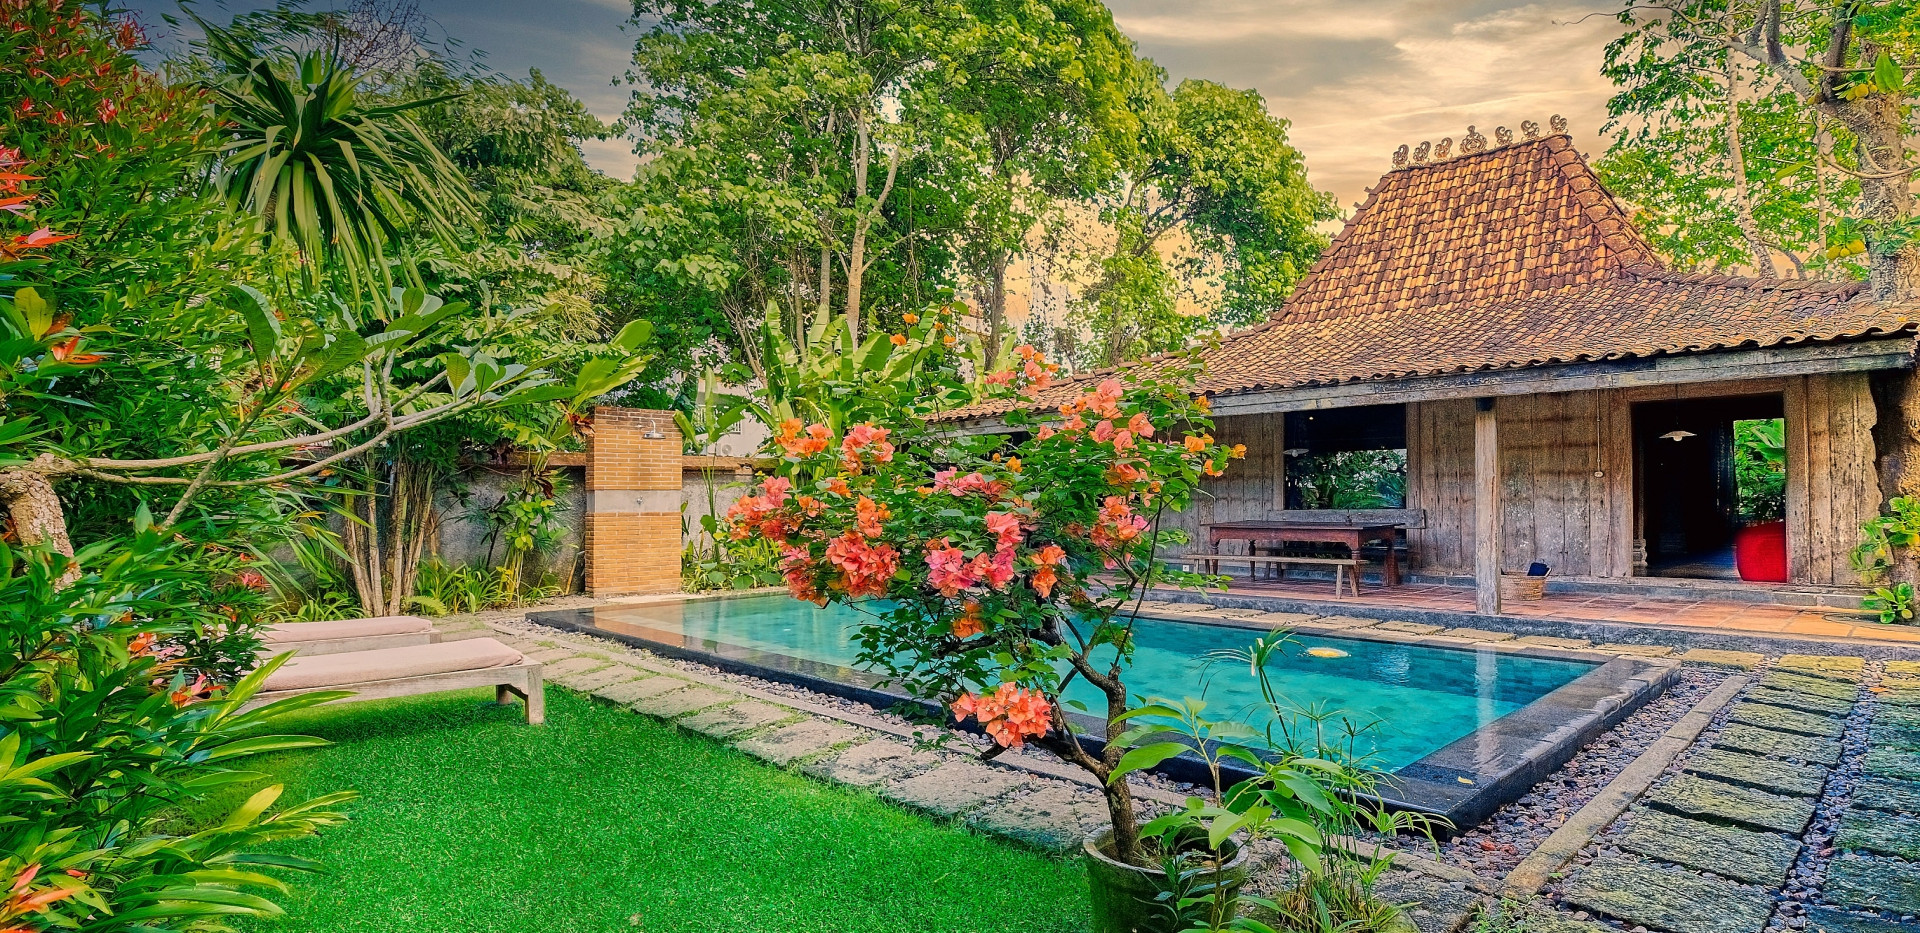 Wahyu-Villa-honeymoon-pool-view-1 .jpg